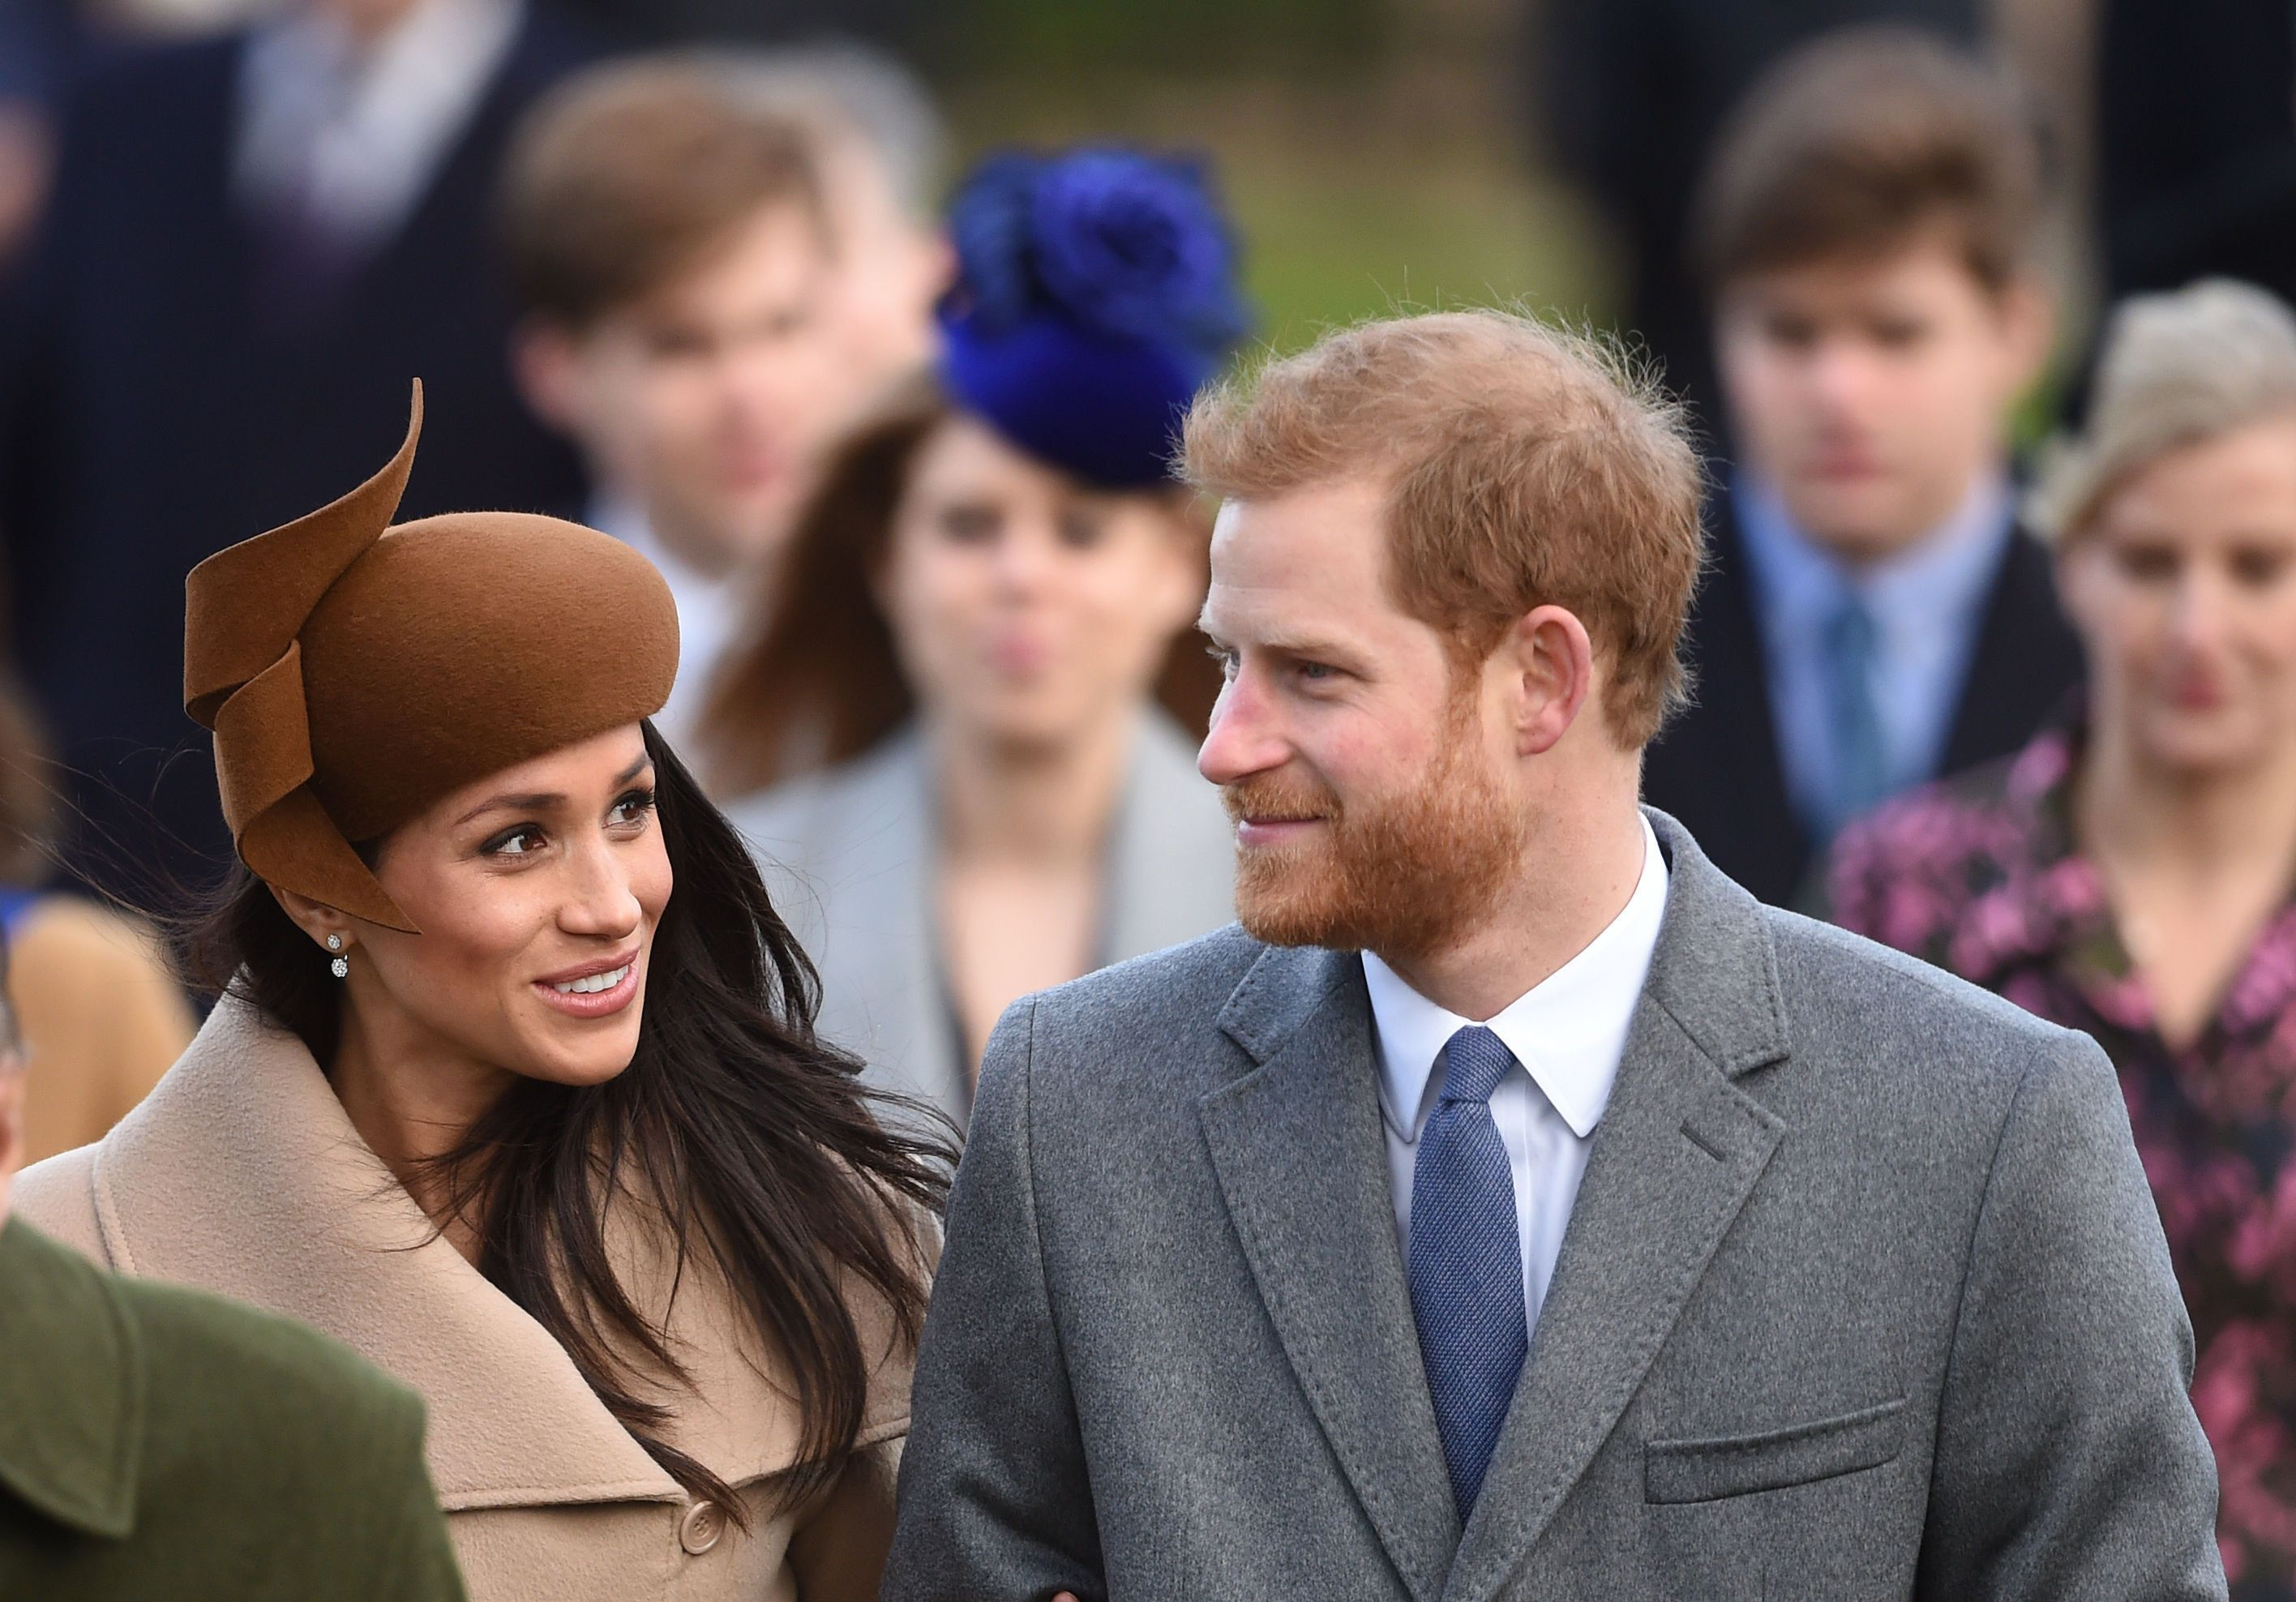 Prince Harry and Meghan Markle arrive to attend Christmas morning church service at St Mary Magdalene Church in Sandringham,